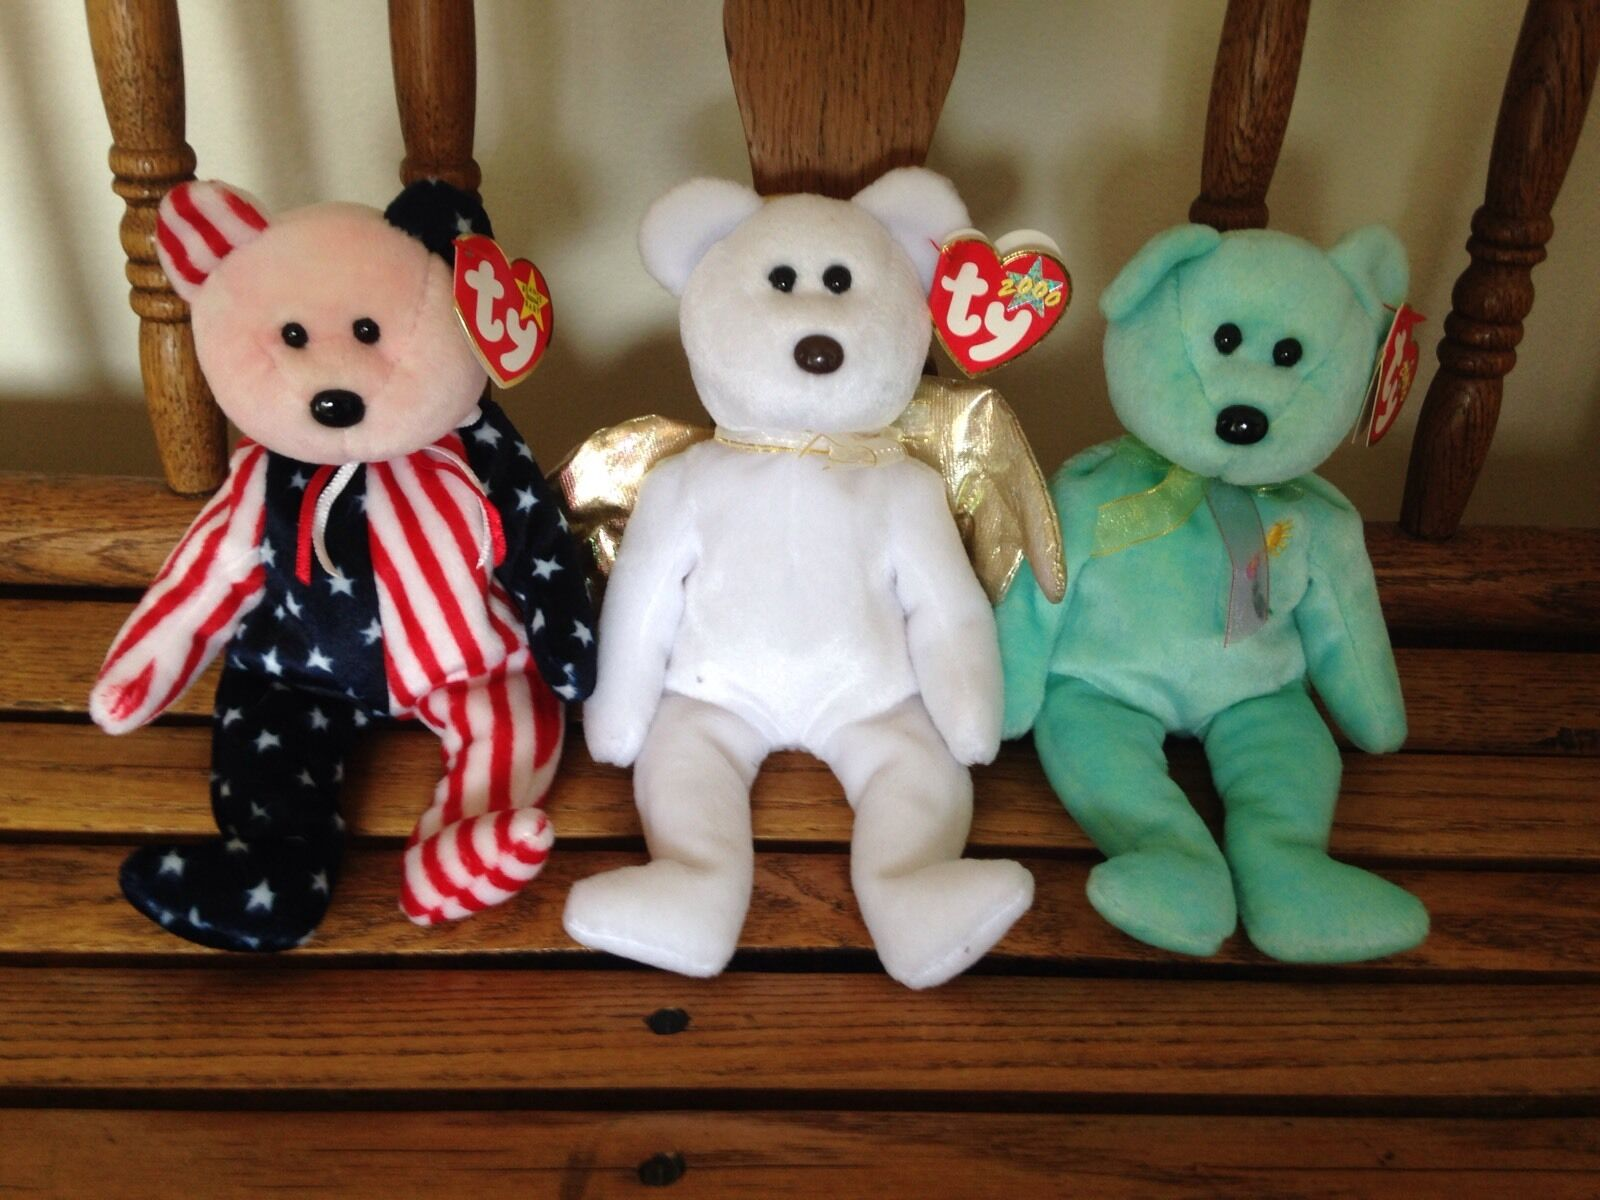 TY Beanie Babies - Mixed Mixed Mixed Lot of 30 Teddy Bears - Retired - 1994 to 2000 e2739f